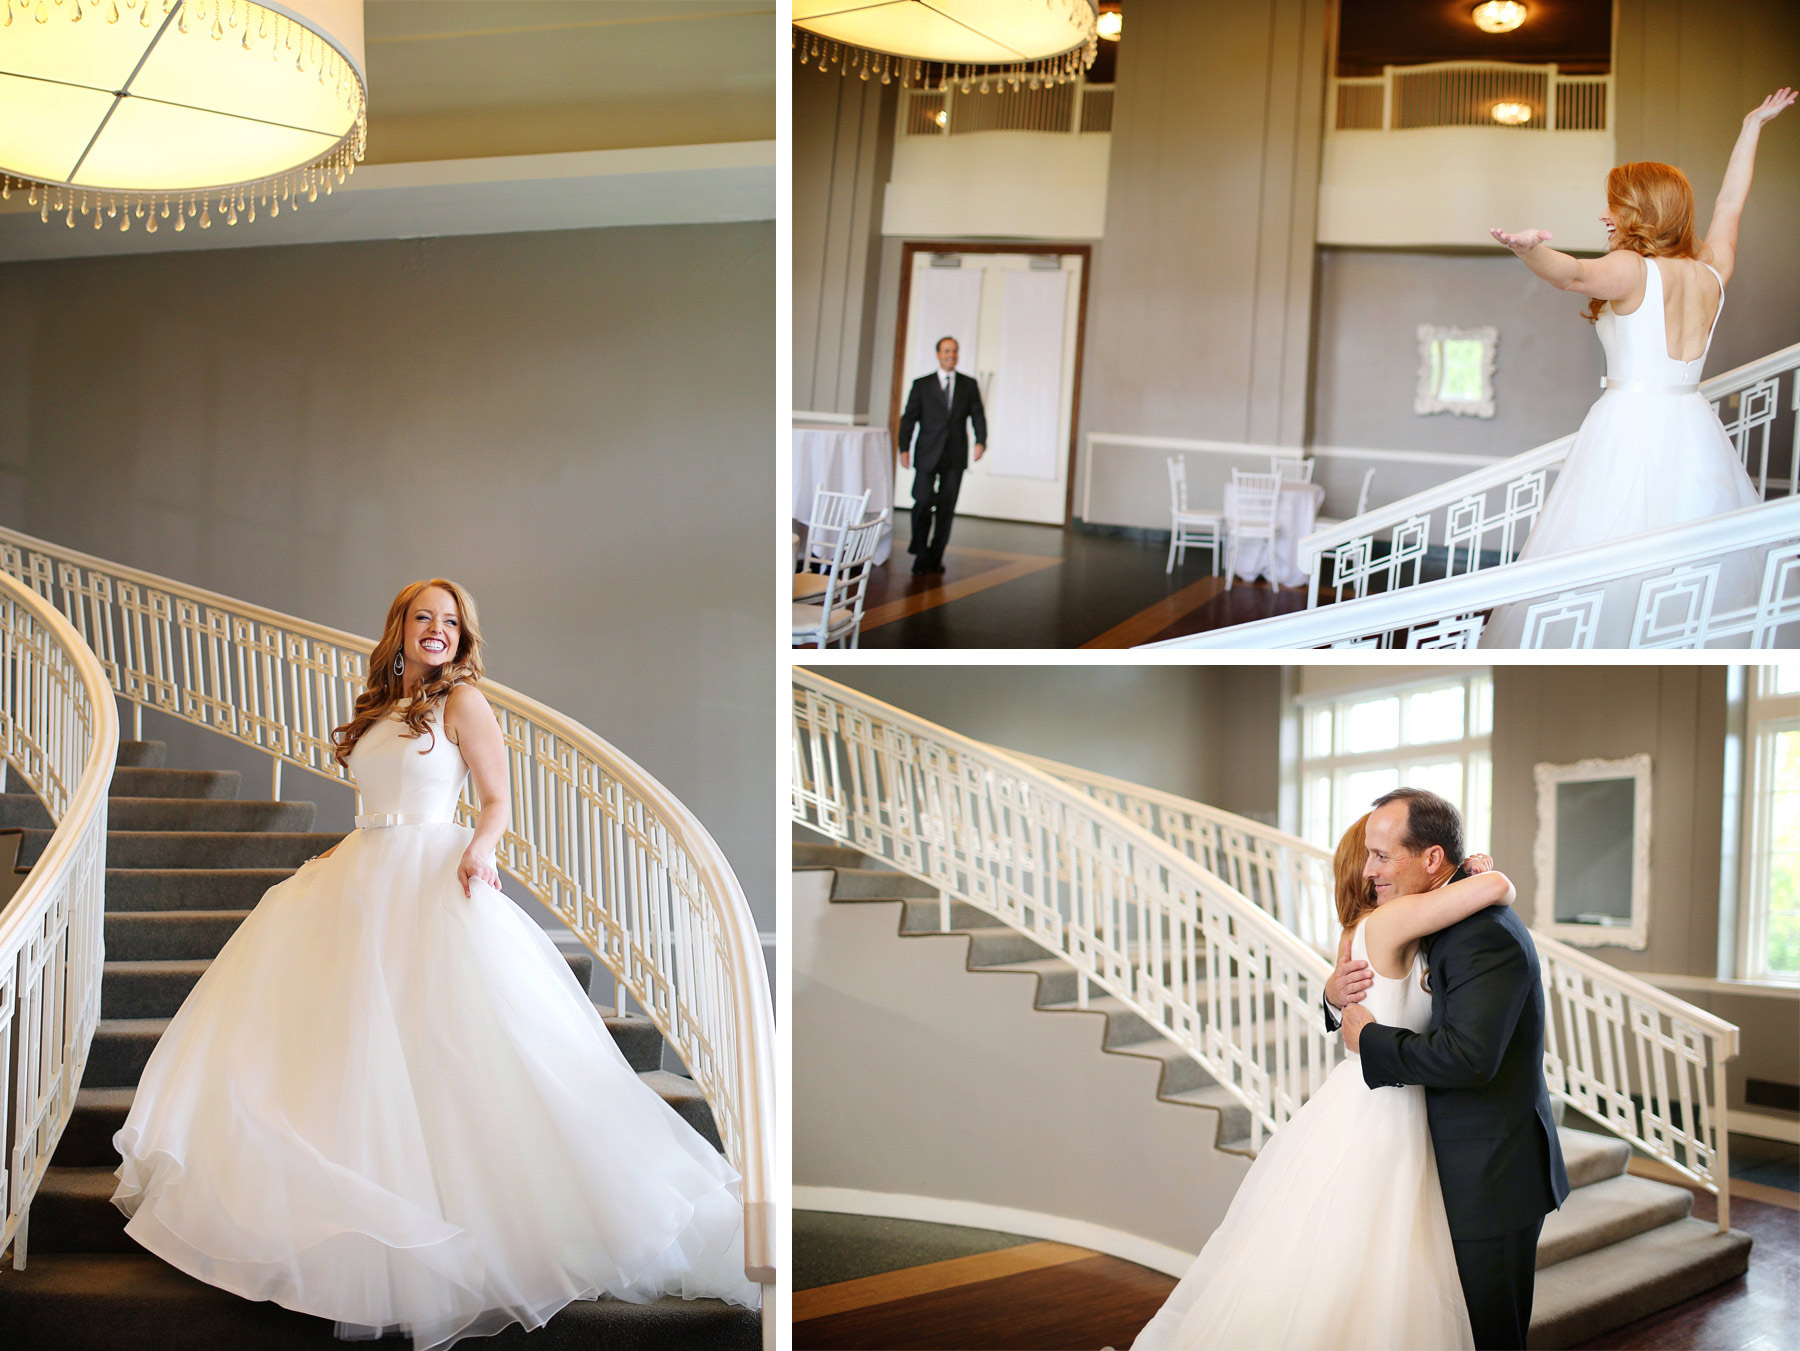 04-Minneapolis-Minnesota-Wedding-Photographer-by-Andrew-Vick-Photography-Fall-Autumn-Calhoun-Beach-Club-Getting-Ready-Bride-Father-Daughter-Reveal-Staircase-Stairs-Hug-Embrace-Kristy-and-Jack.jpg